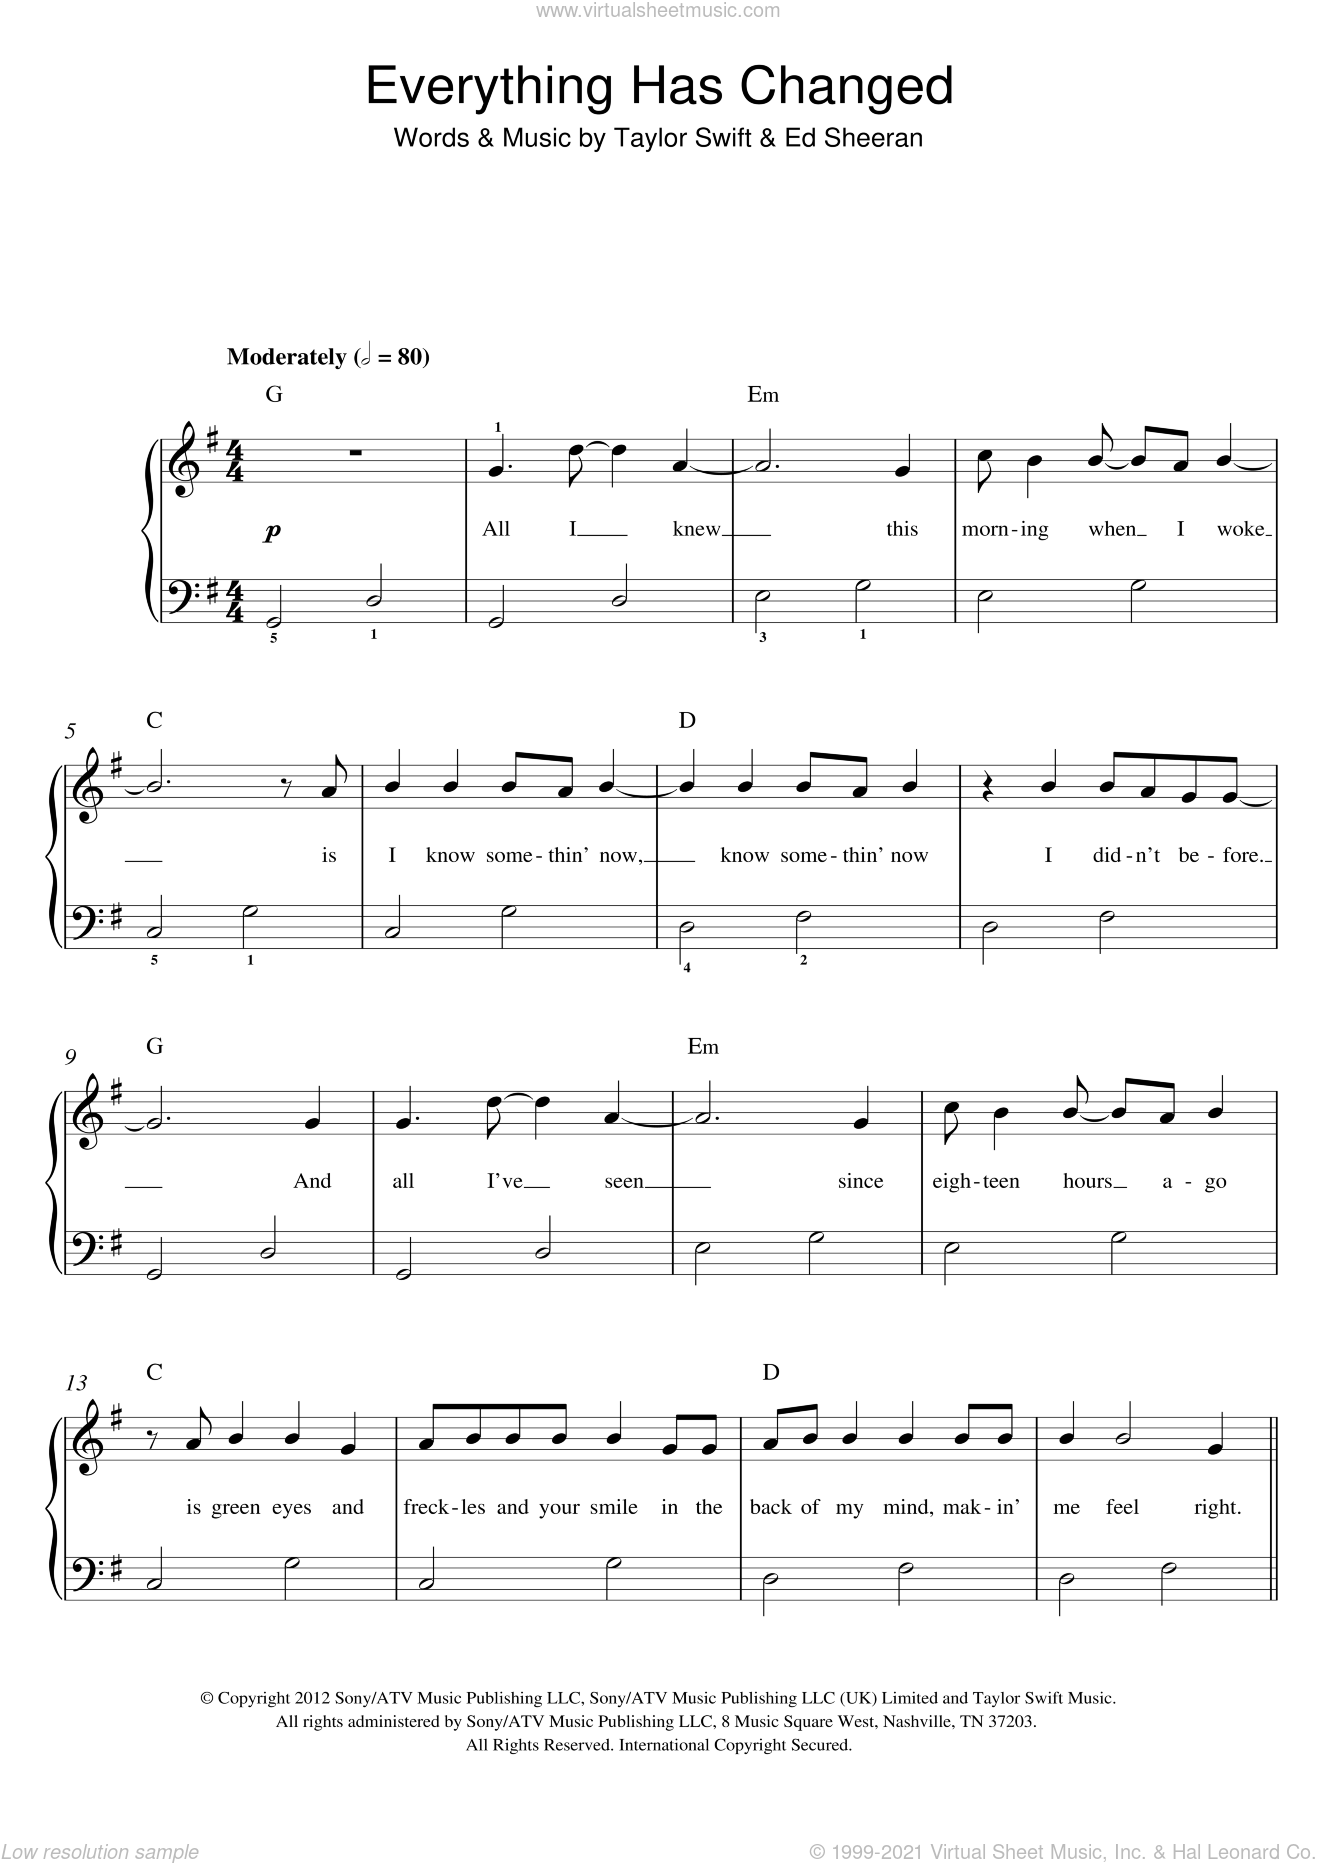 Everything Has Changed (feat. Ed Sheeran) sheet music for piano solo by Taylor Swift and Ed Sheeran, easy skill level